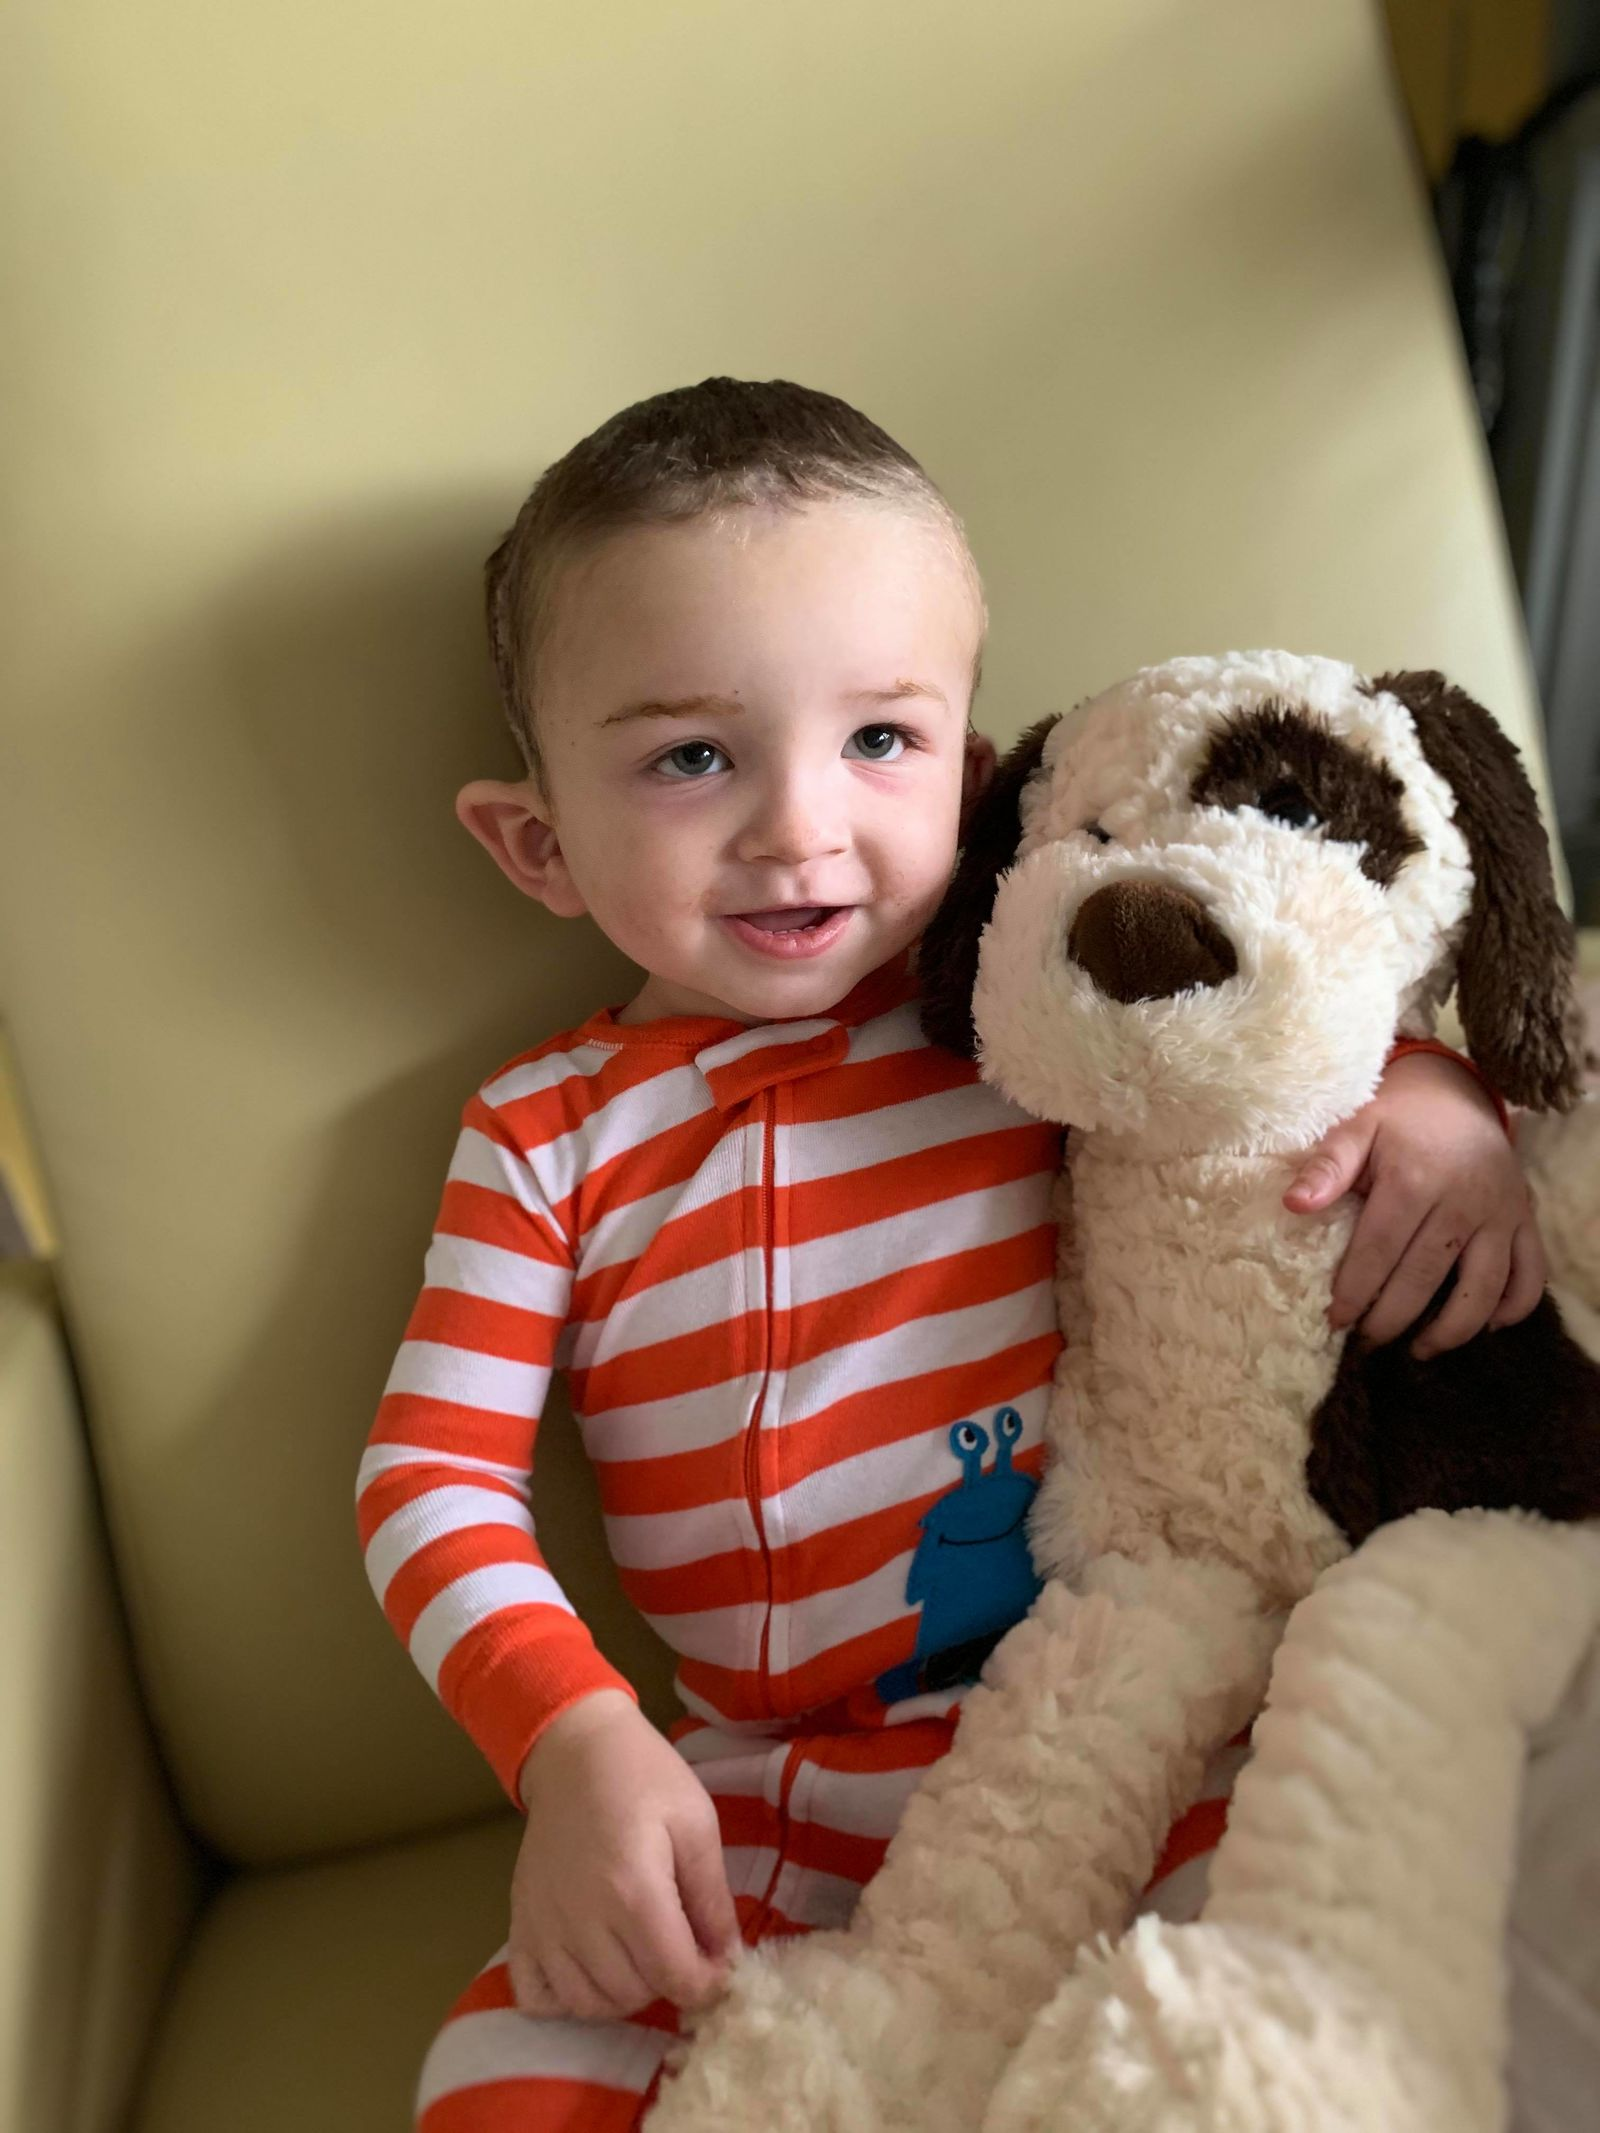 Only a few days after his cranial vault remodeling surgery, Branson was back home. (Heather Figueroa via Storyful)<br>